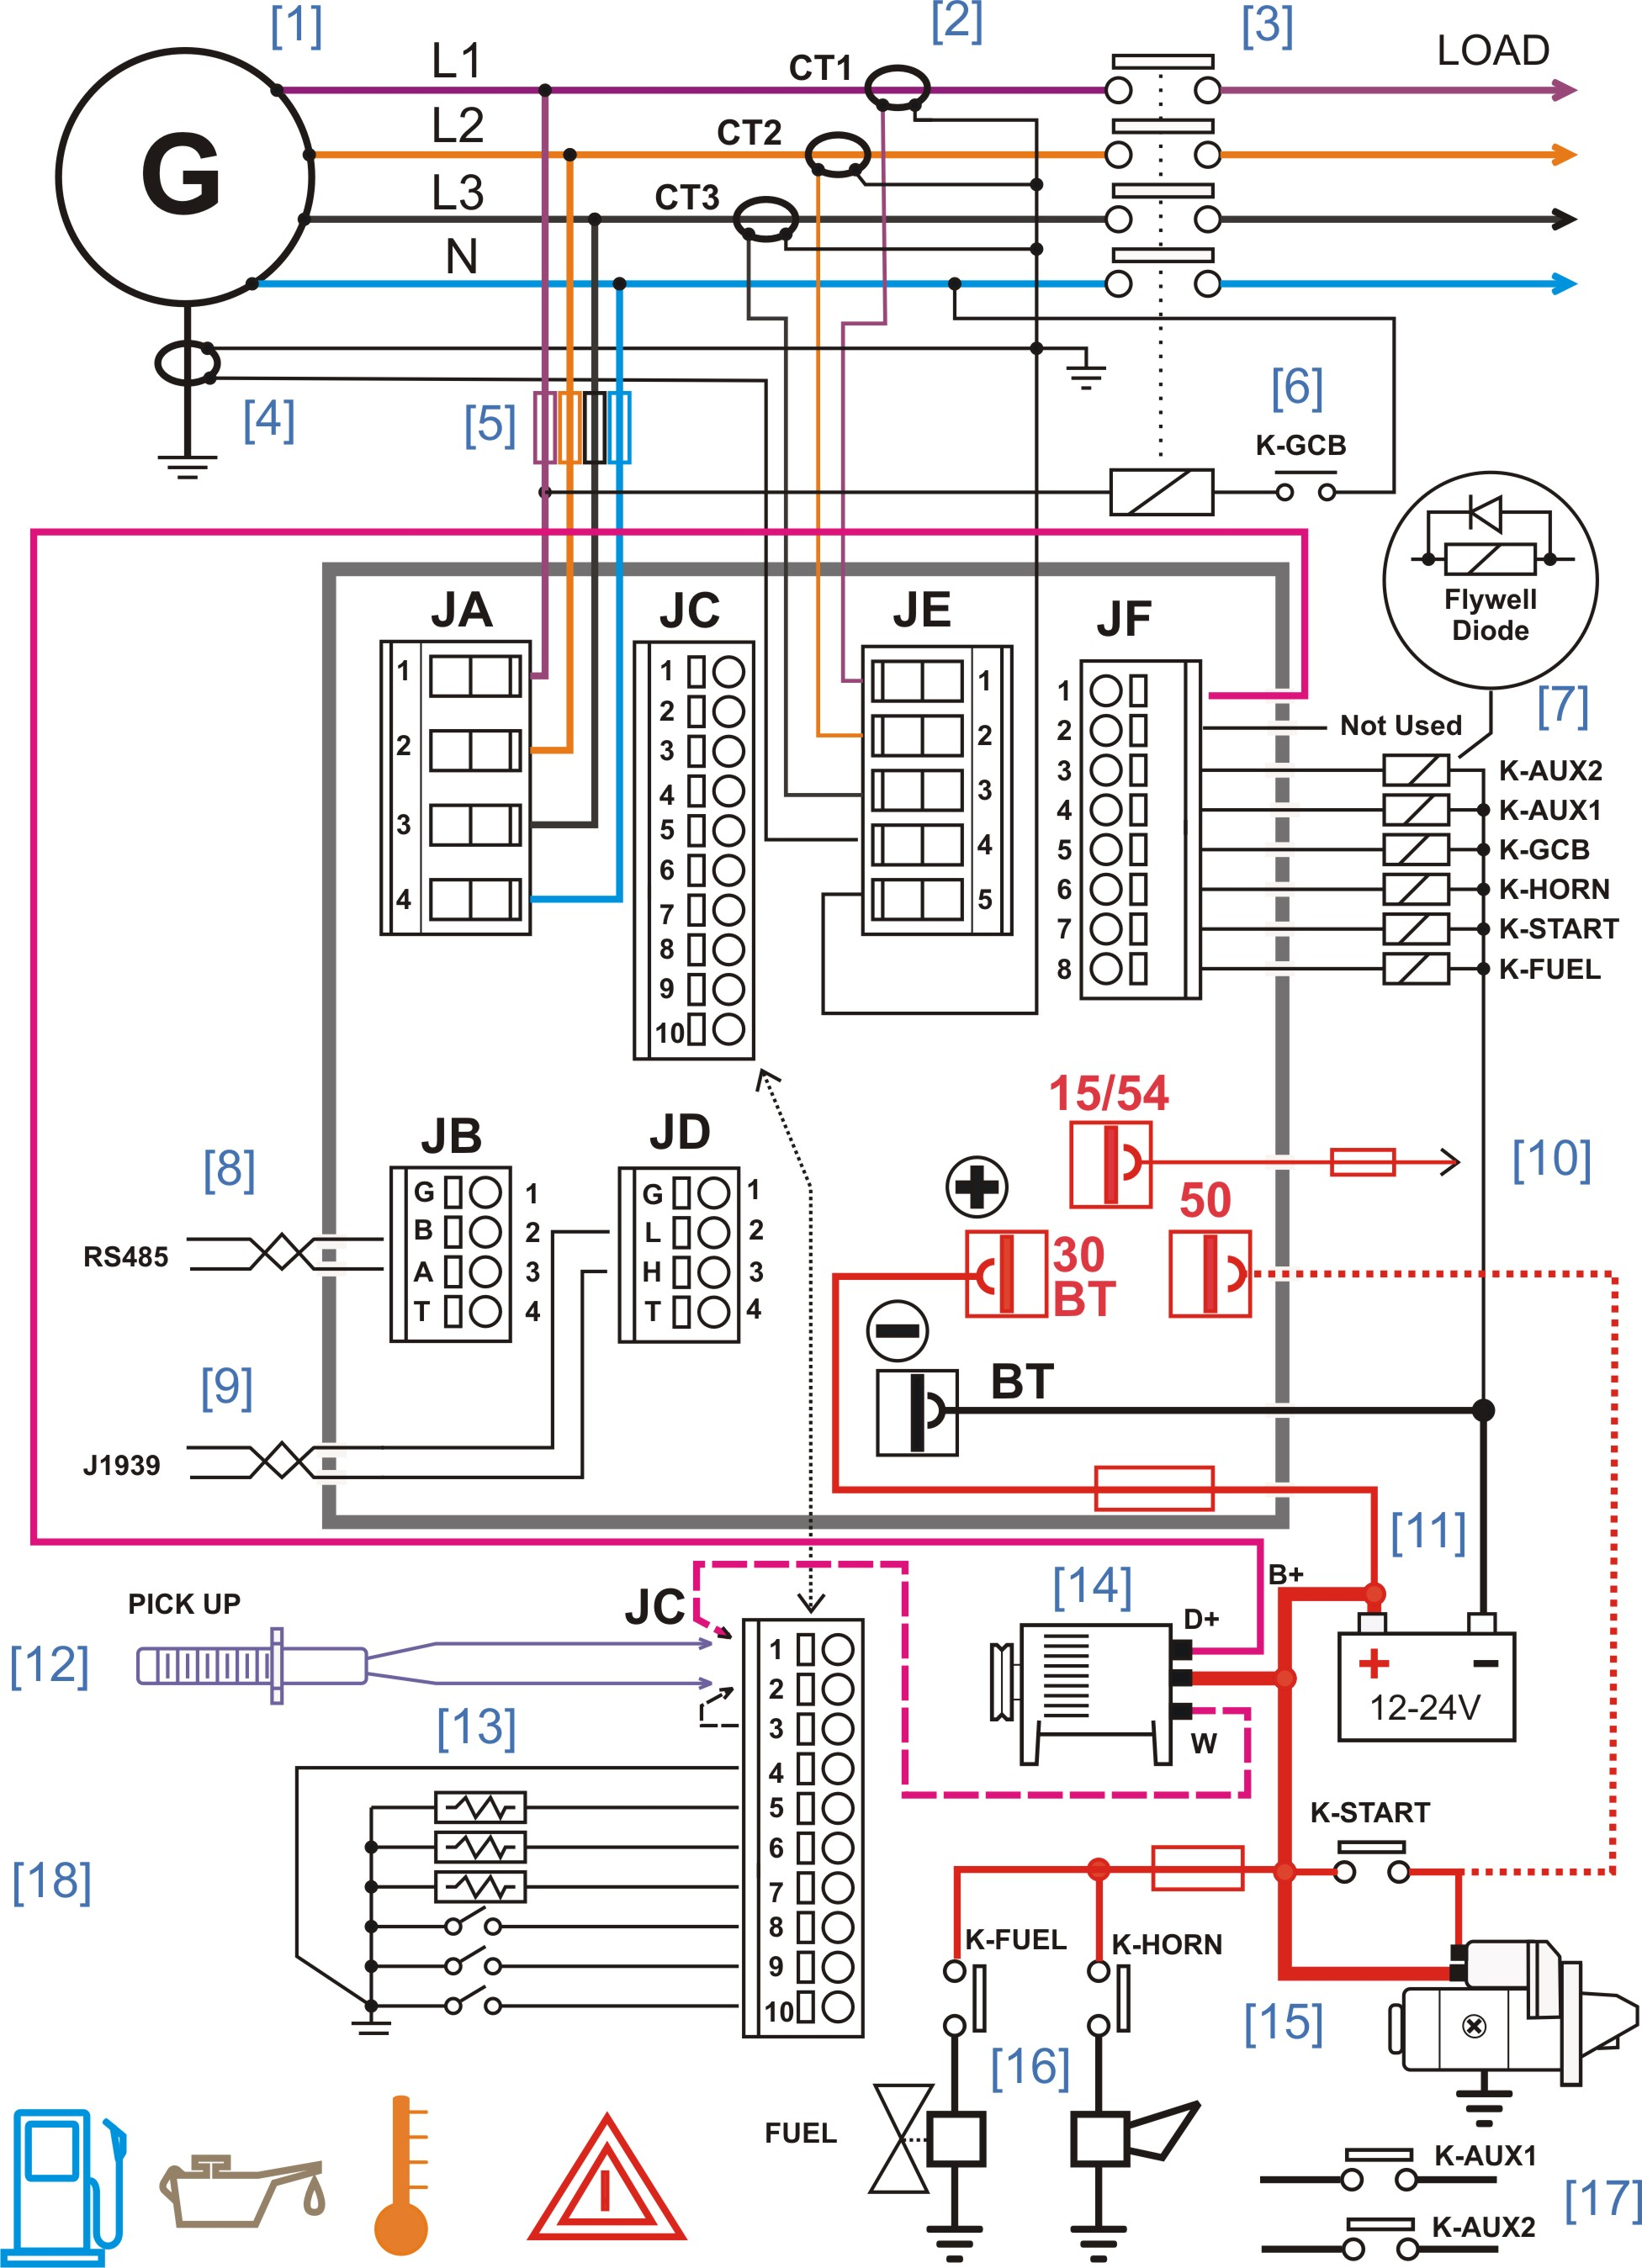 Electrical Control Panel Wiring Diagram Electrical Control Panel